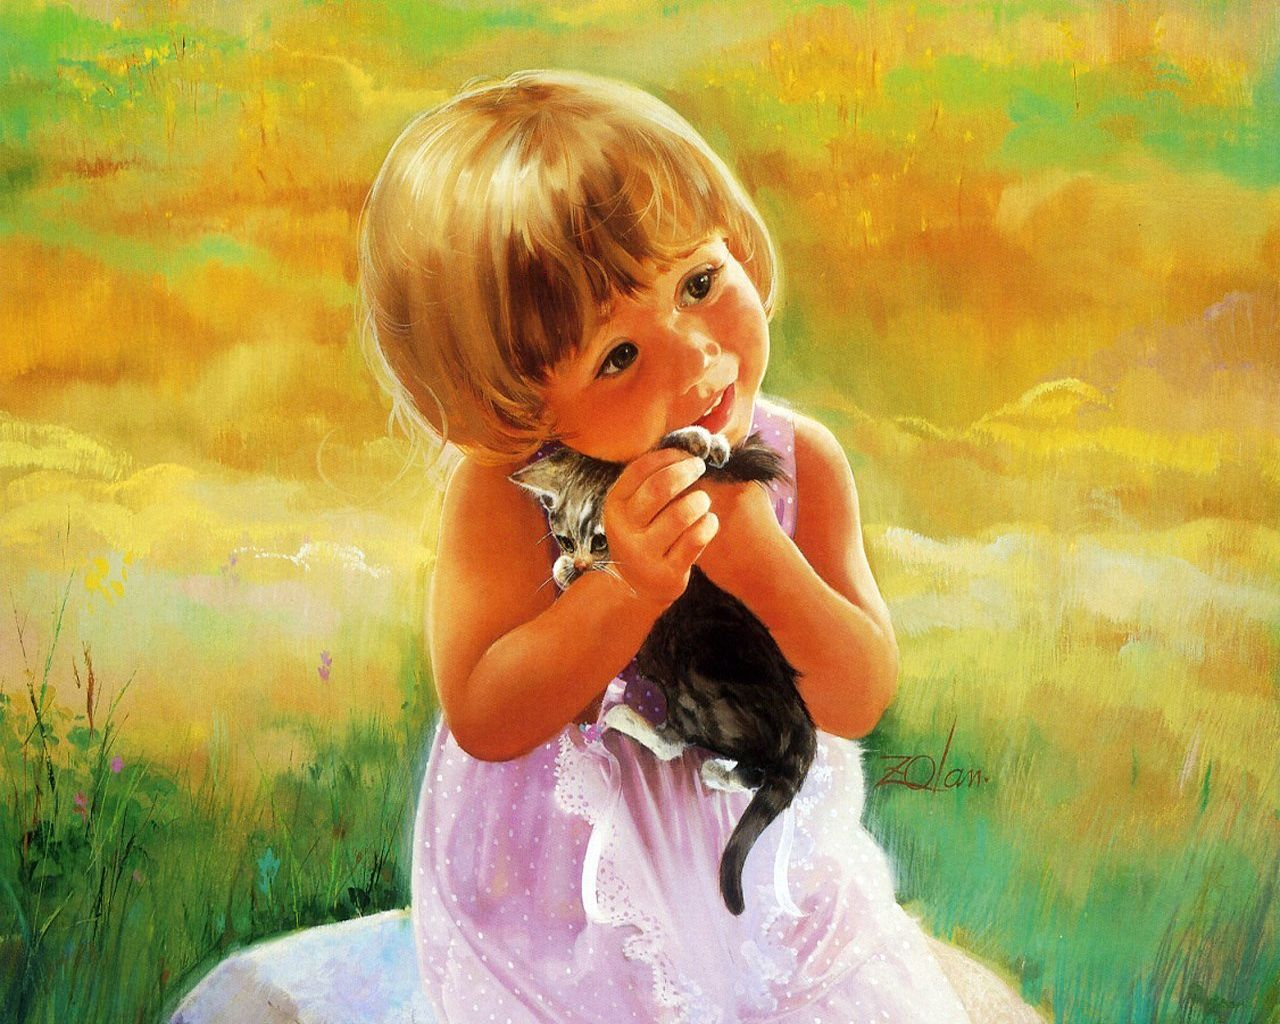 The girl and kitten